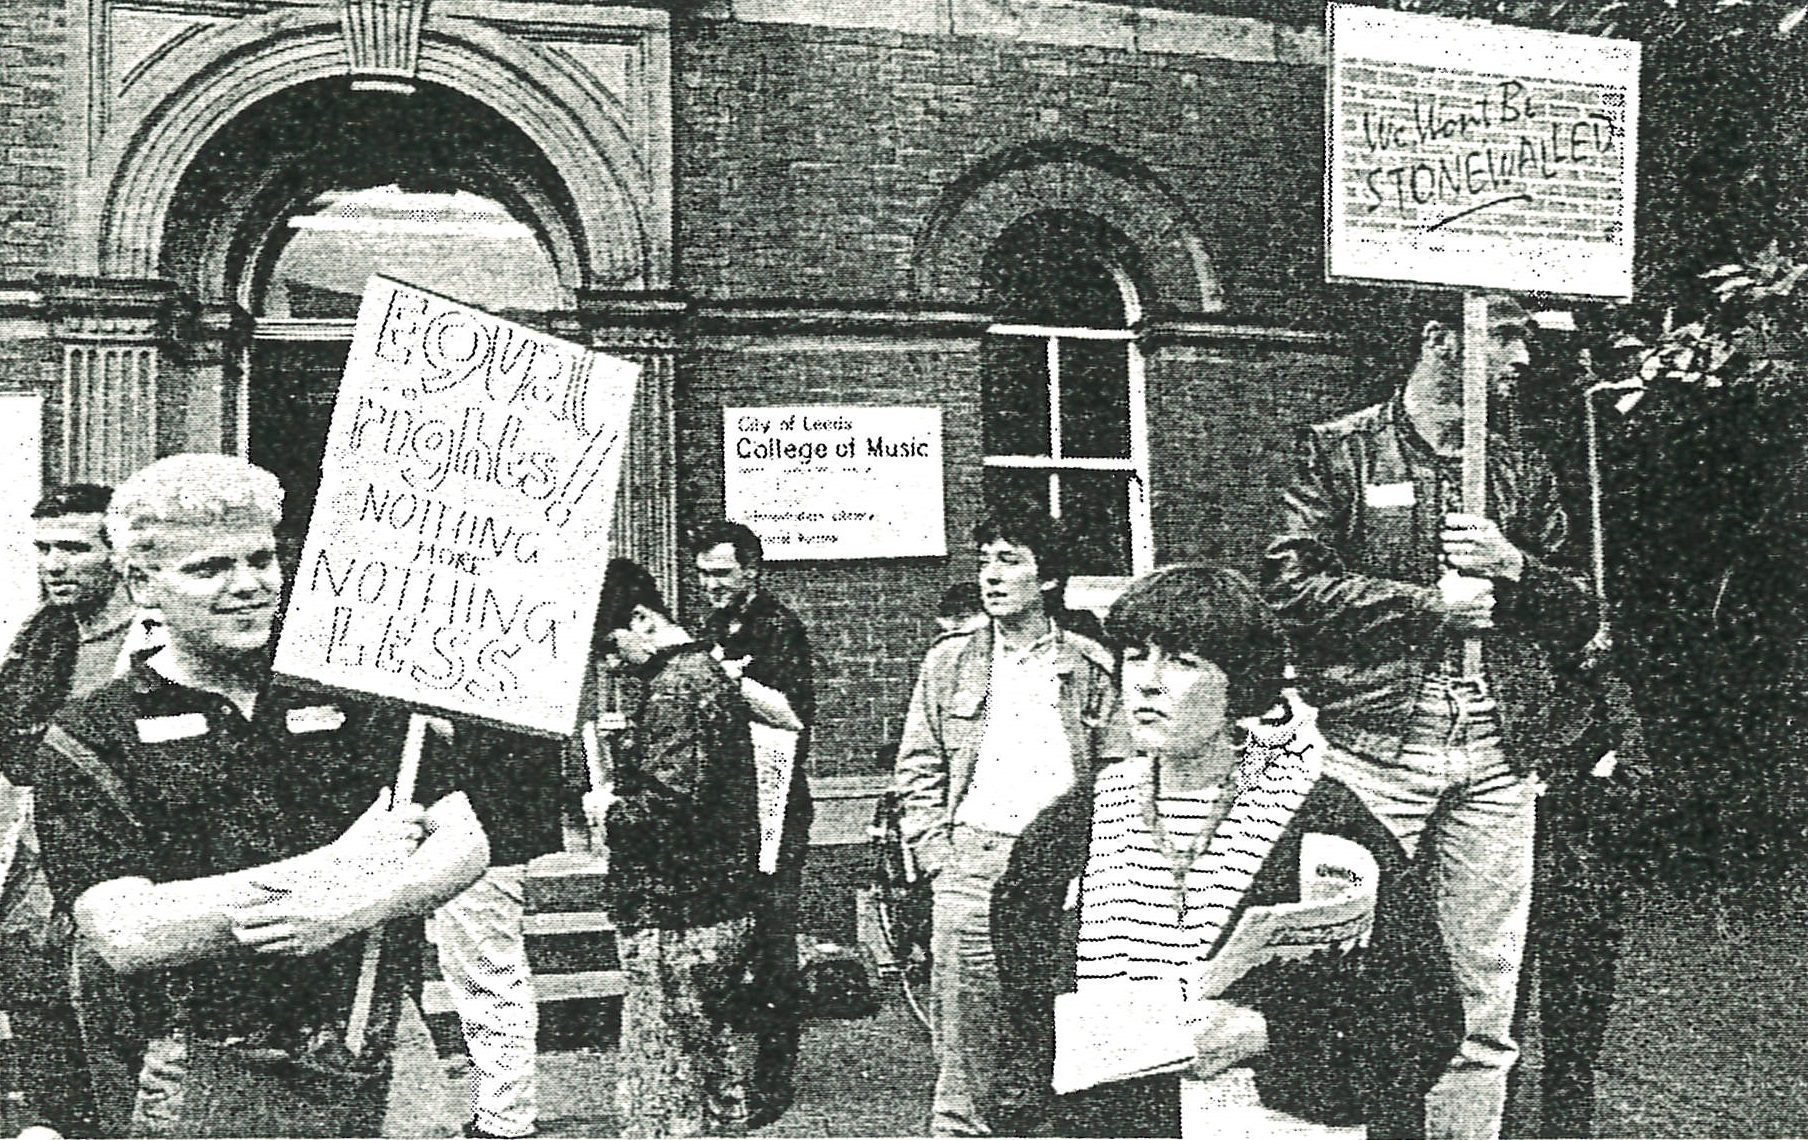 Old newspaper photo of people with placards protesting for equal rights outside Leeds College of Music.